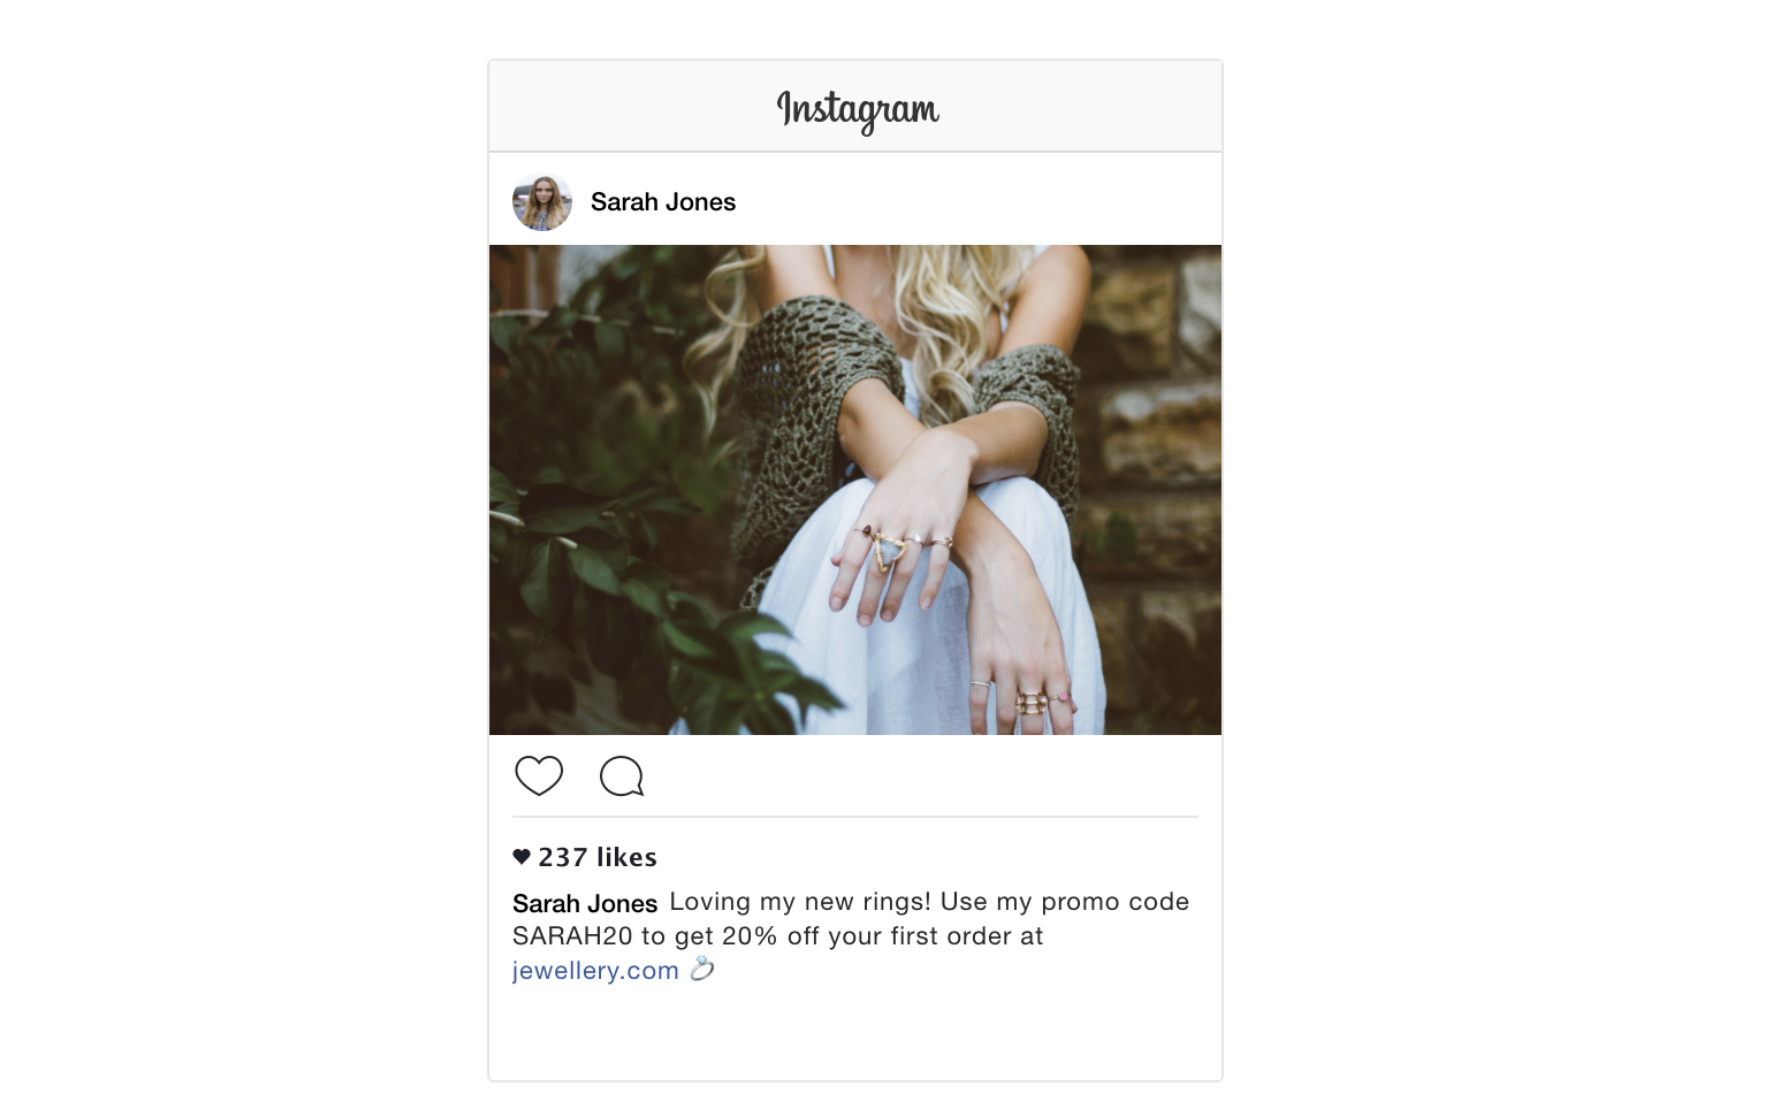 Demo of how promo codes look on Instagram